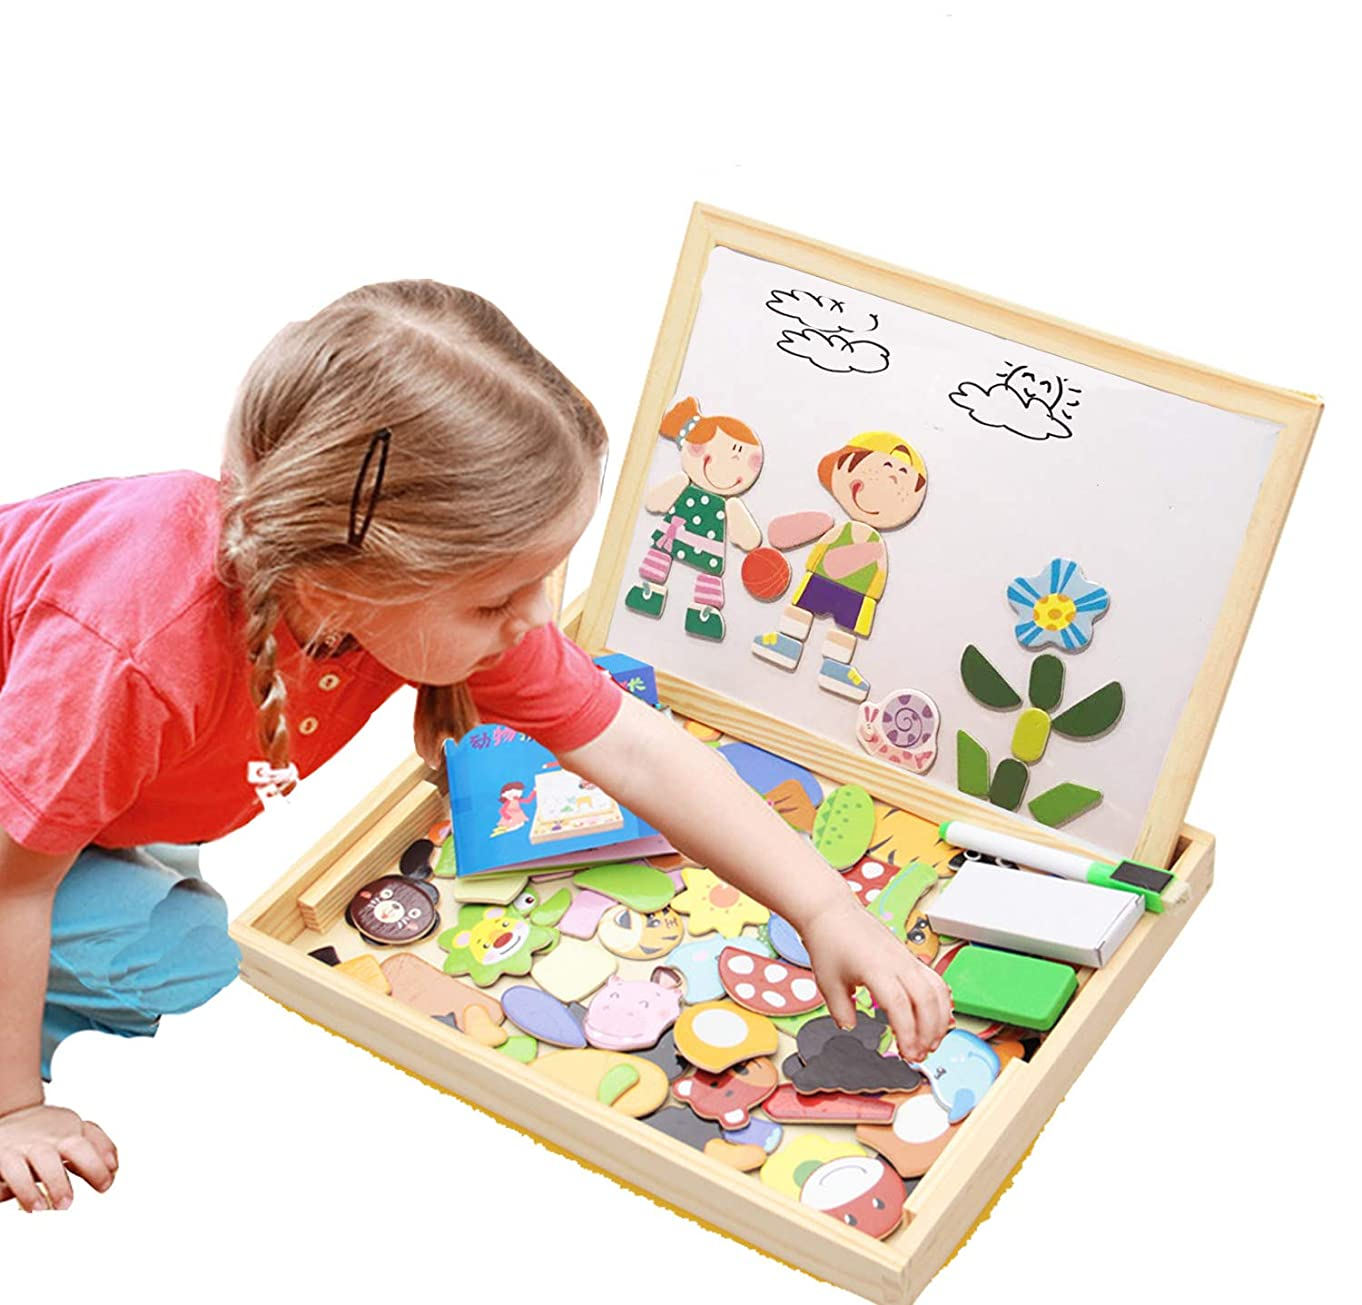 ODDODDY Educational Wooden Toys for Girls Boys Kids Children Toddlers Magnetic Drawing Board Puzzles Games Learning for Age 3 4 5 6 7 8 9 Year Old Gift Idea Birthday Halloween Christmas (kids2)